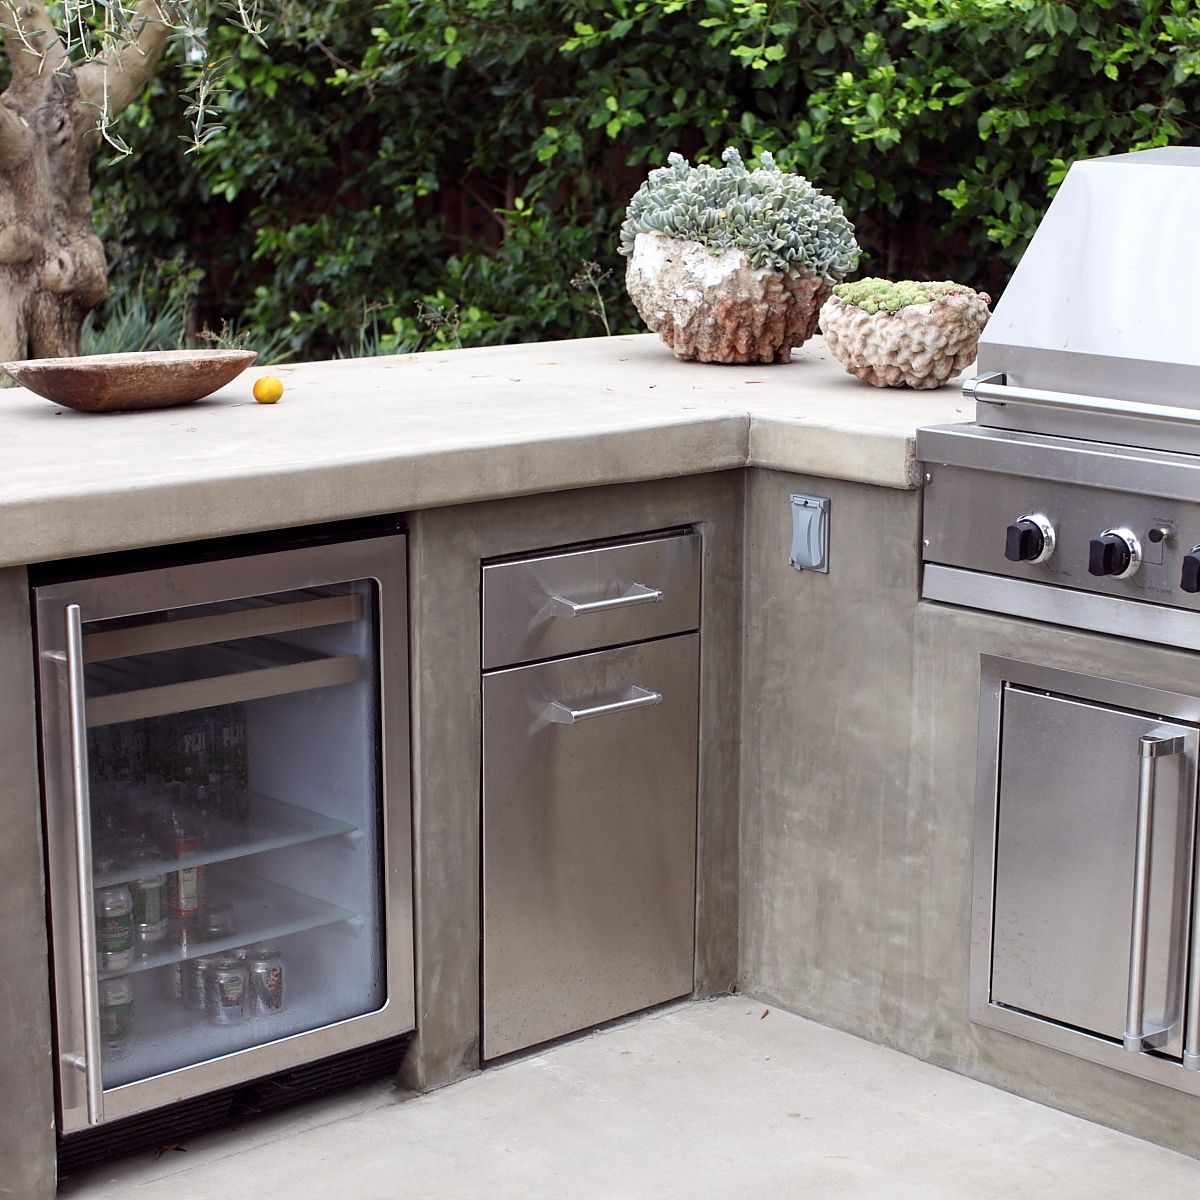 Outdoor Kitchen Wood Countertops: An Outdoor Fridge Is An Essential For A High End Built In